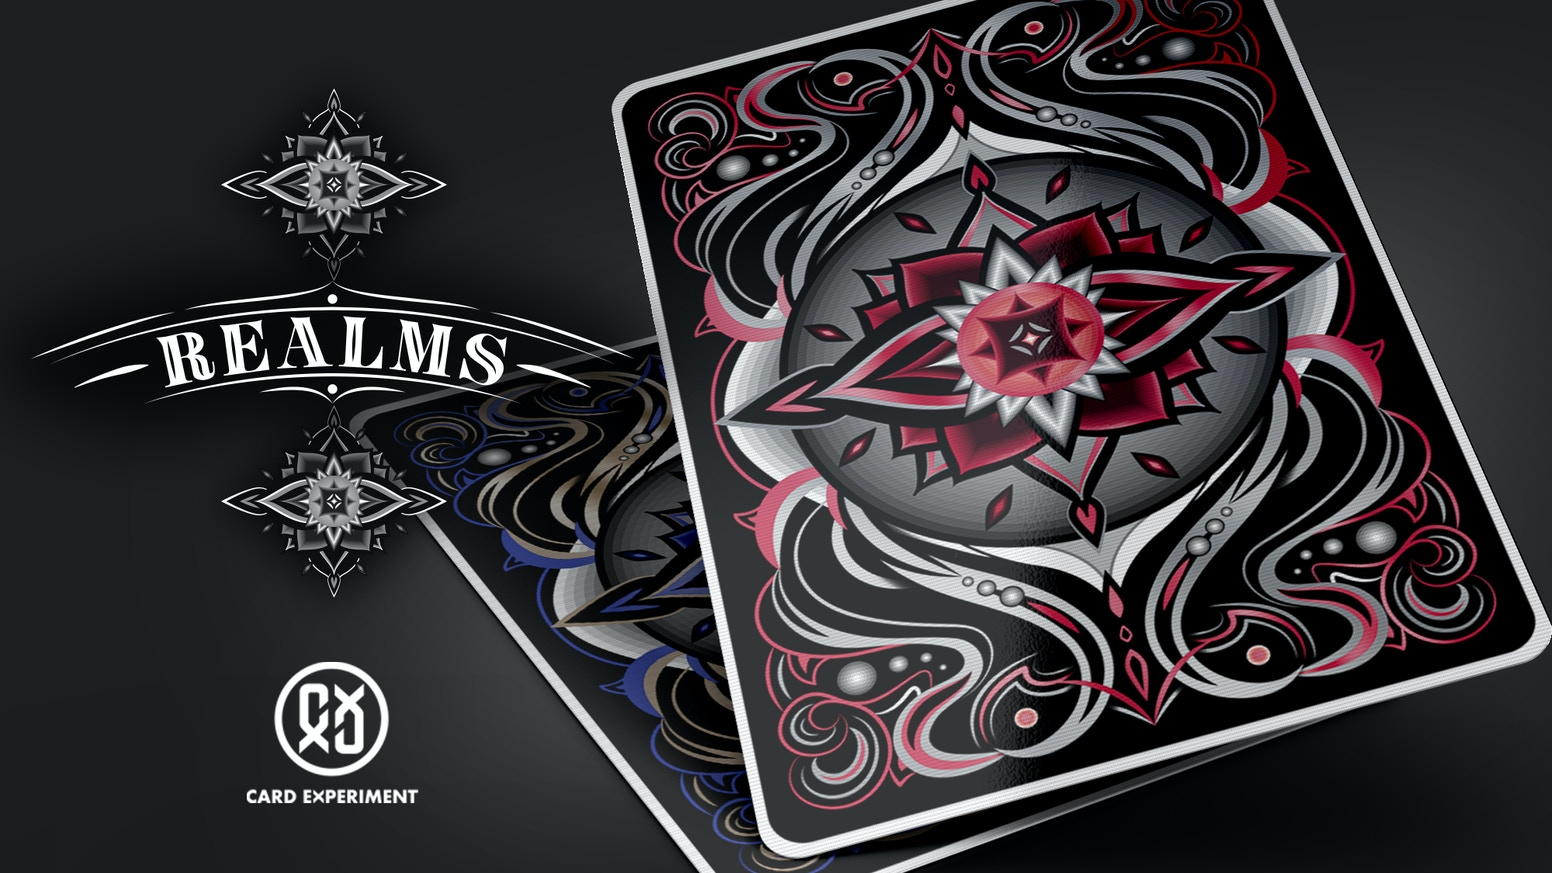 A fully customized deck portrays a visual allegory of Samsara, the beginning-less cycle of rebirth. Printed by Expert Playing Card Co. and USPCC